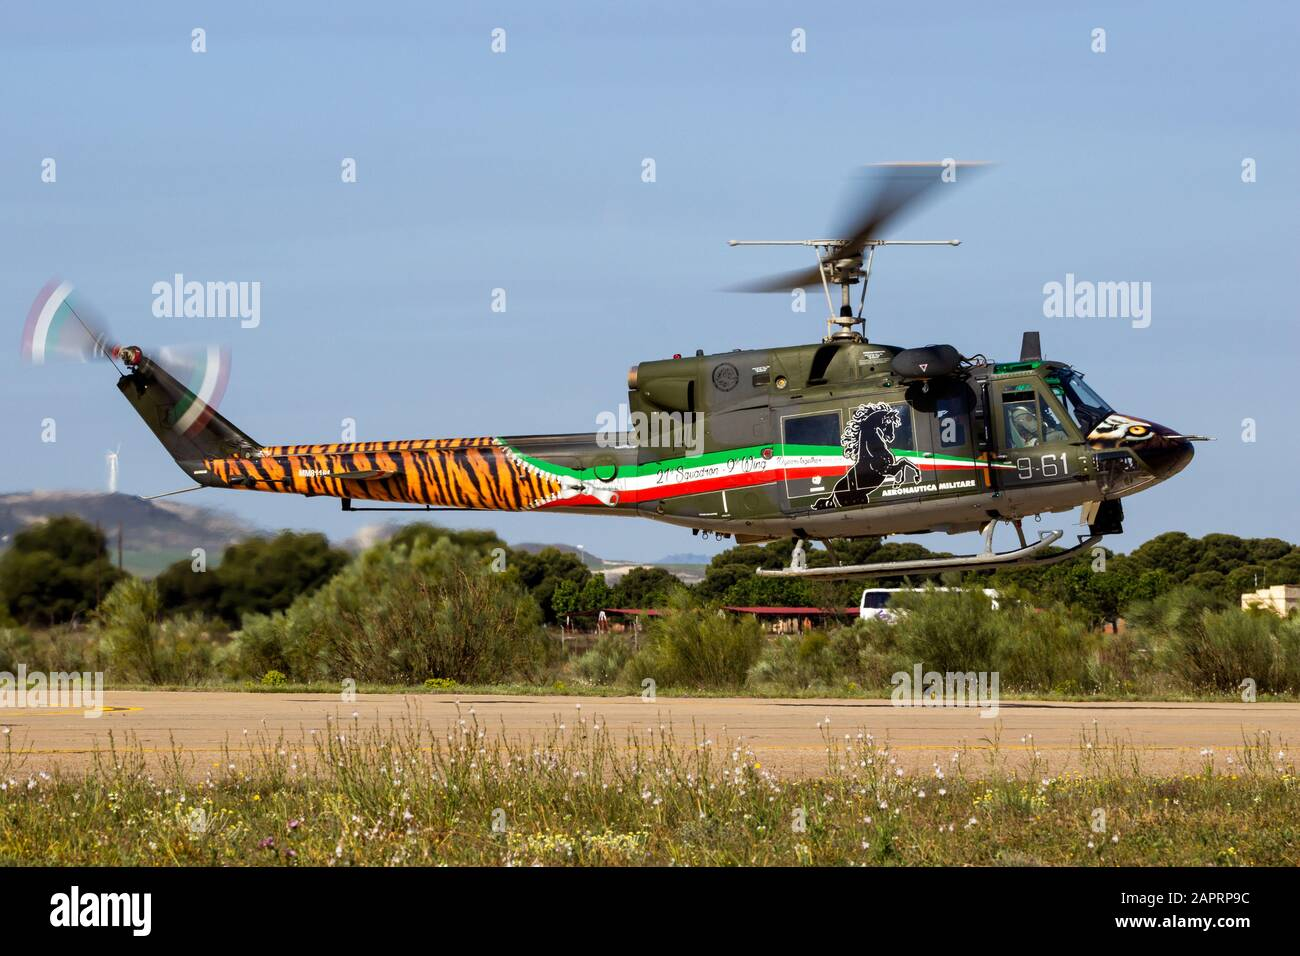 ZARAGOZA, SPAIN - MAY 20,2016: Special painted Italian Air Force Agusta Bell AB-212 military helicopter from 21 Gruppo landing on Zaragoza airbase Stock Photo